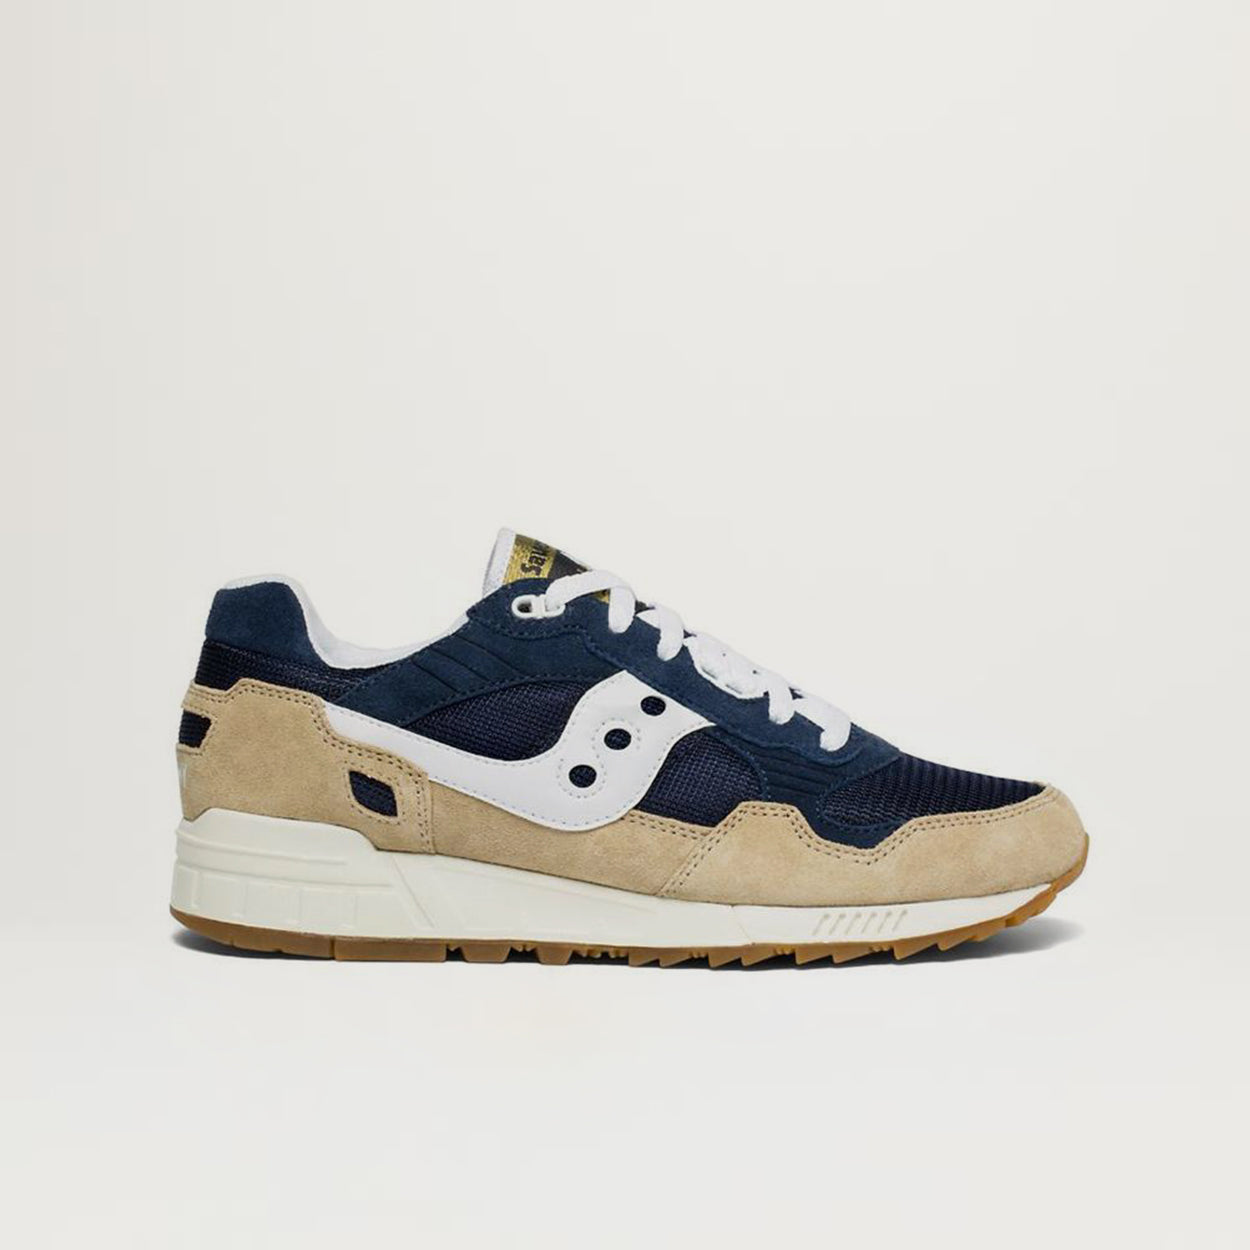 hot sale online 856f1 162e3 Saucony Shadow 5000 (Tan/Navy/White)